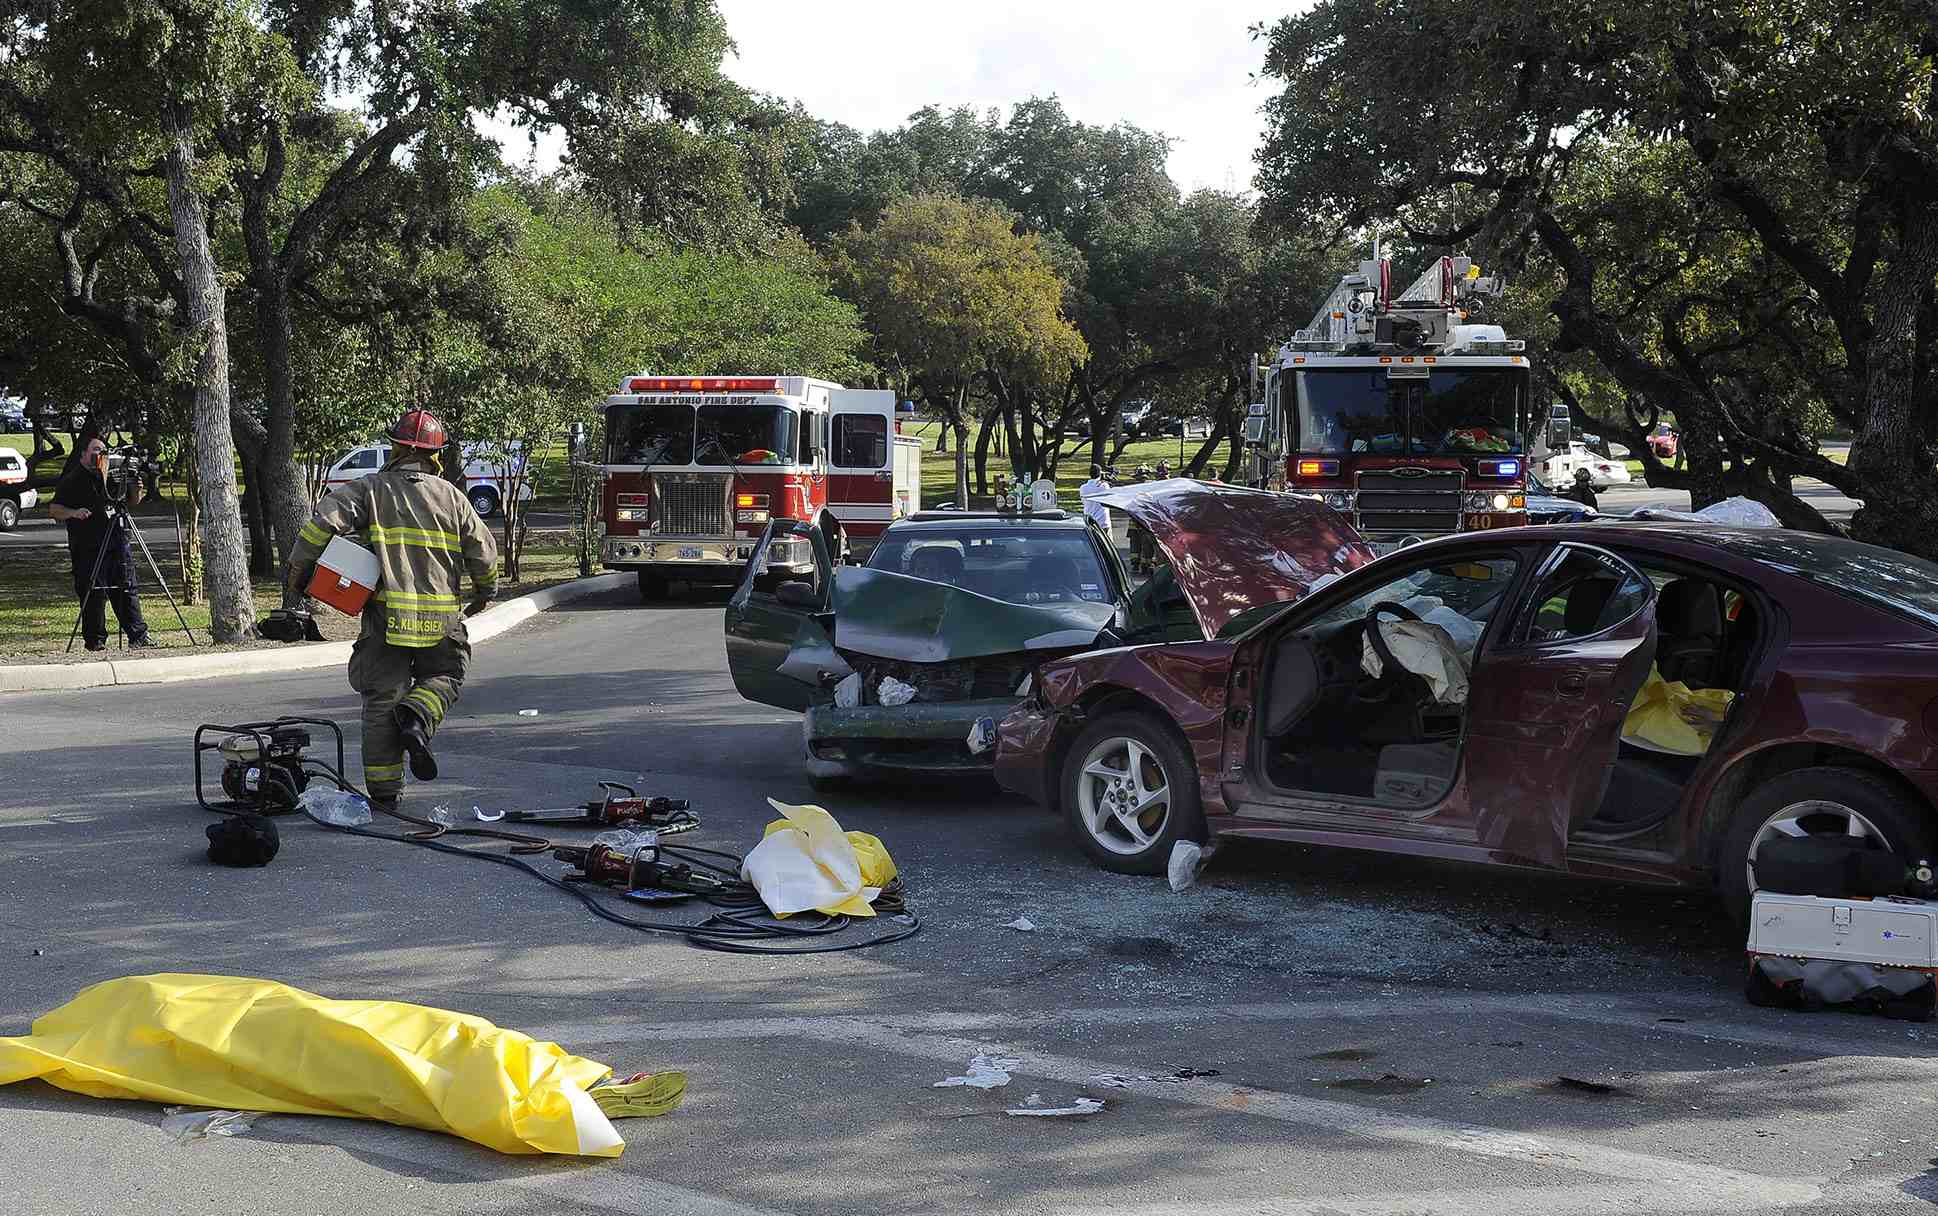 drunk driving fatalities essay Drunk driving research paper the purpose of the following research study project is to analyze the impact of alcohol on road accidents and deaths/injuries resulting from the same.